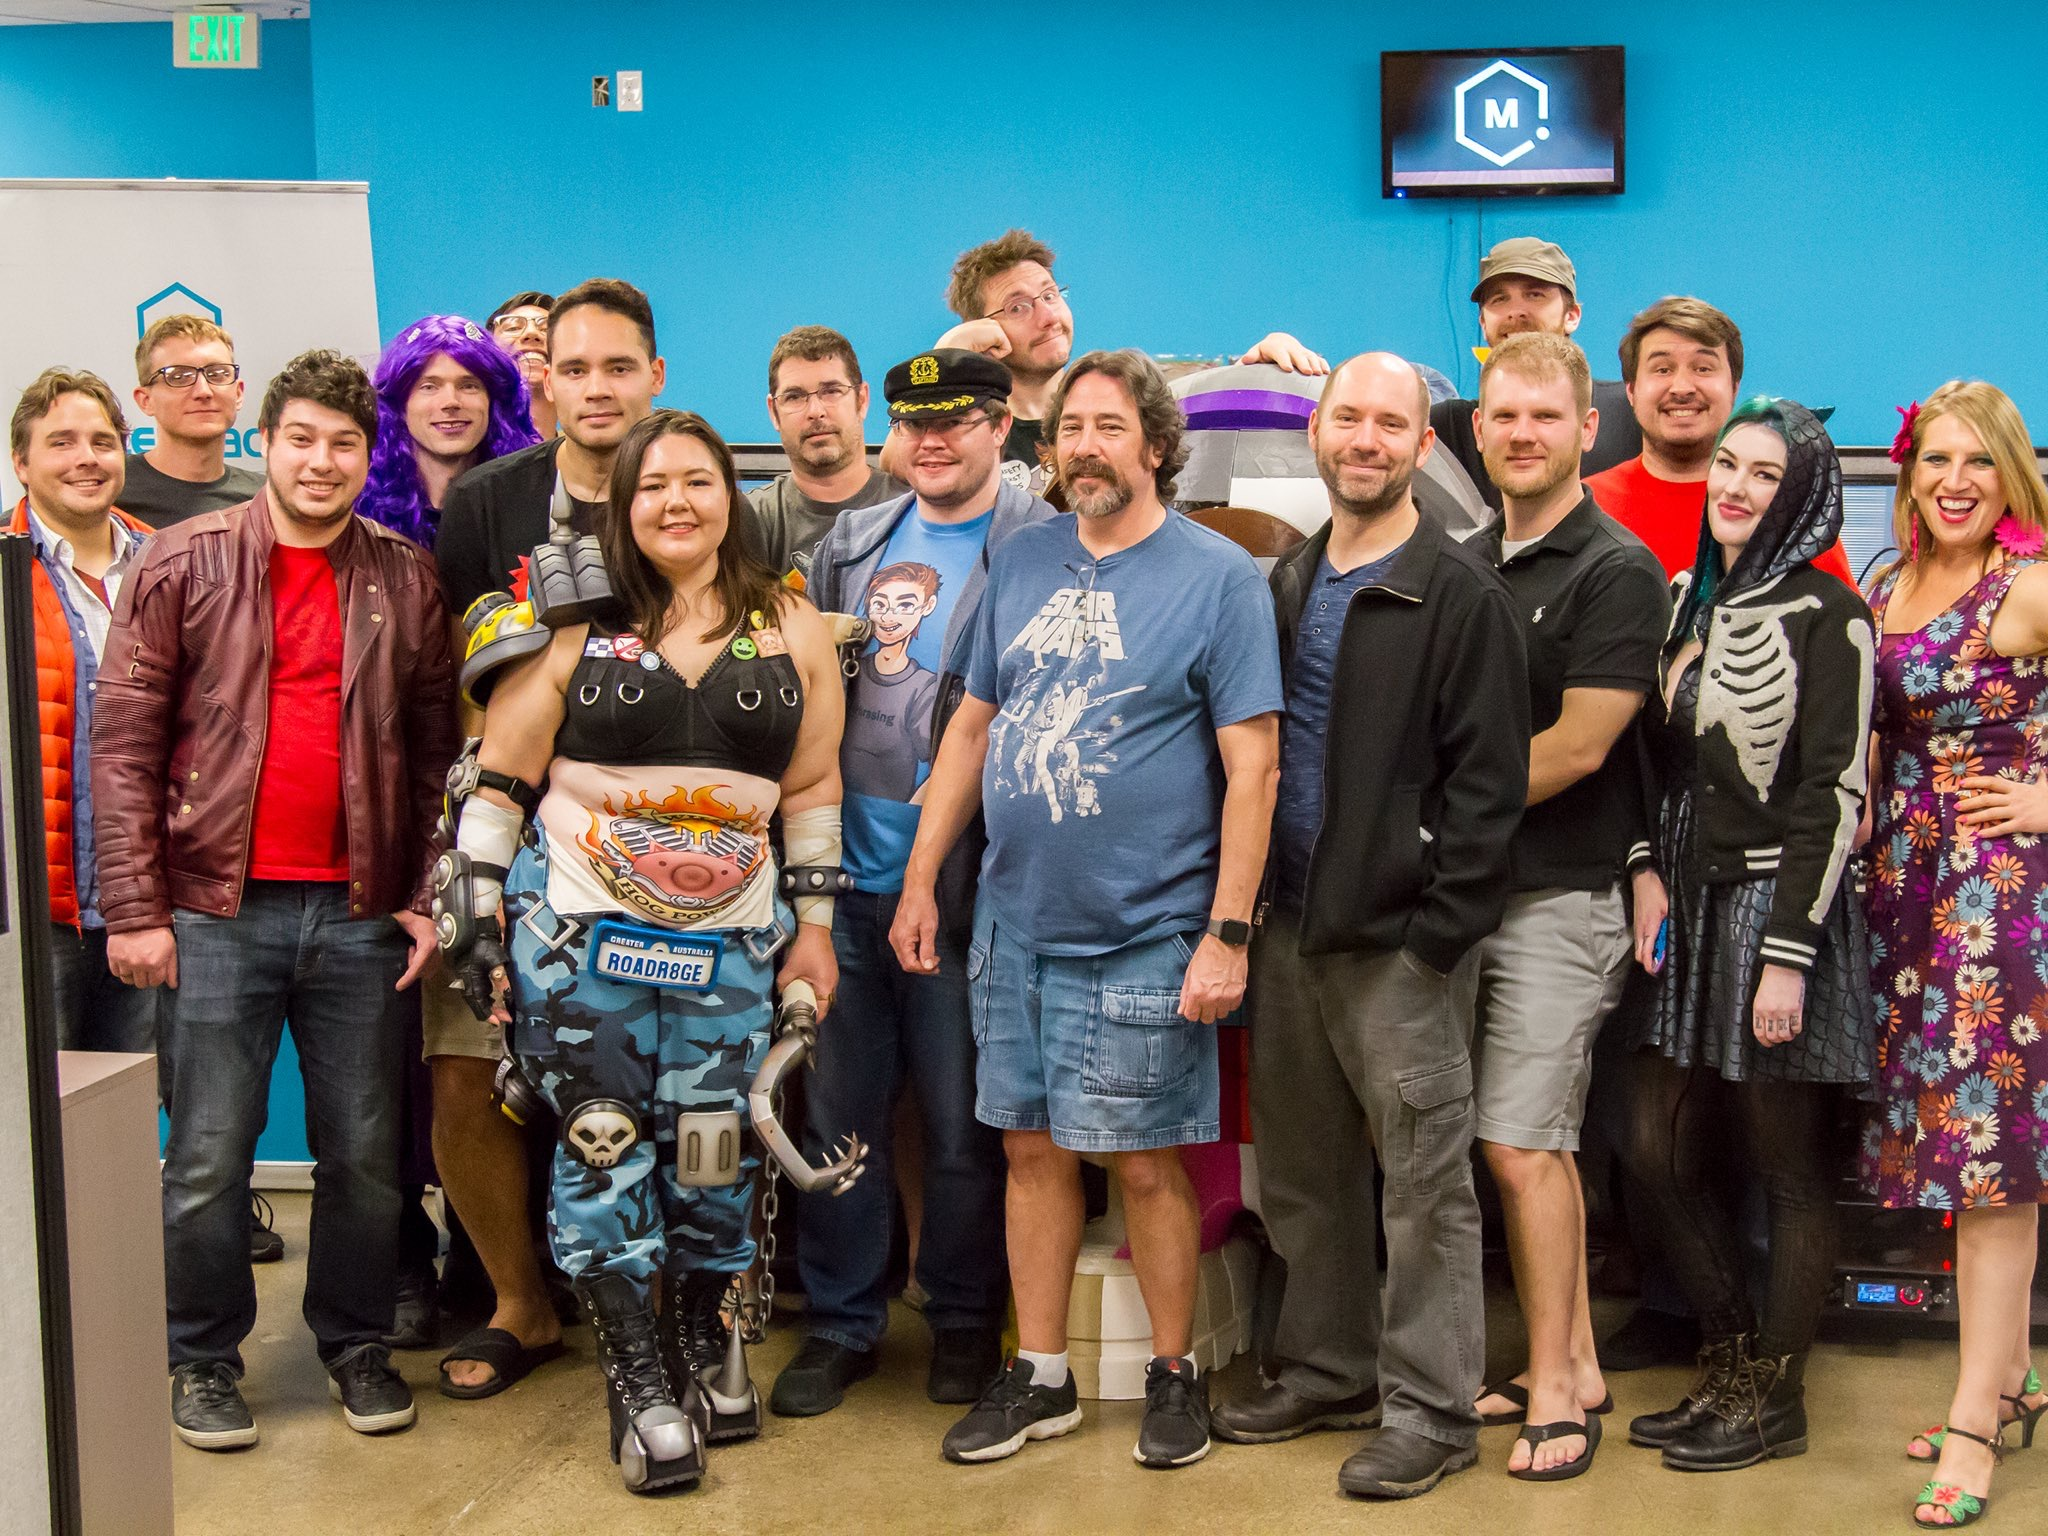 Meetup November Matterhackers - AmieDD